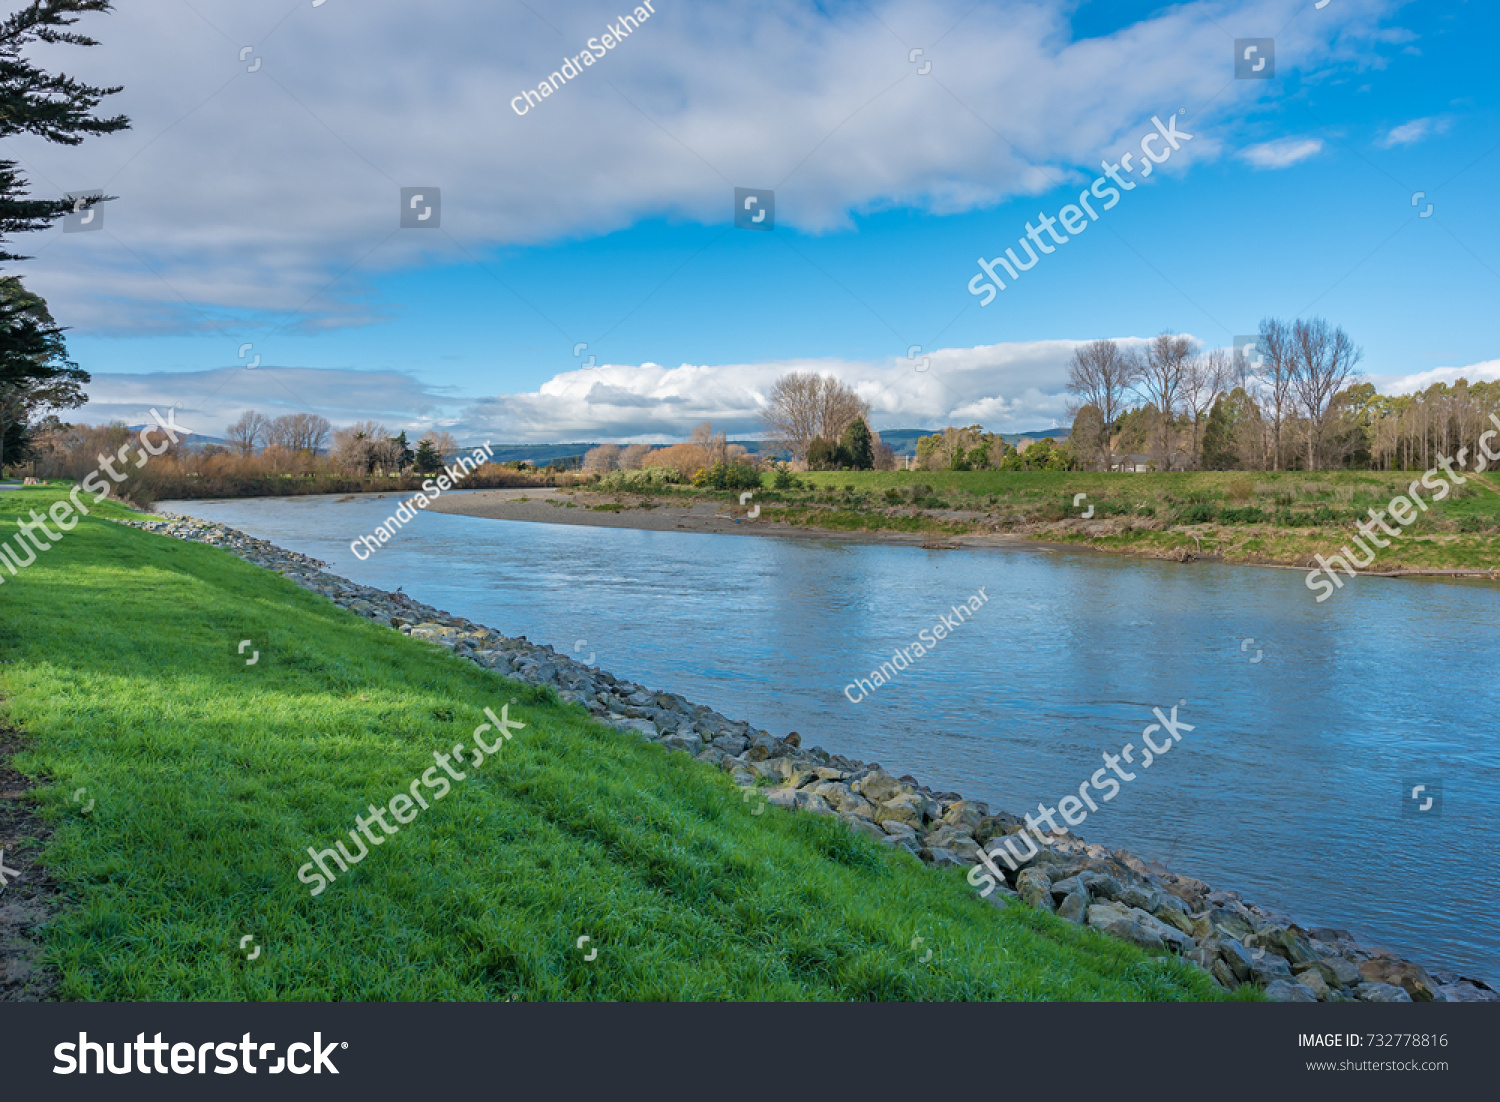 stock-photo-banks-of-the-manawatu-river-in-palmerston-north-new-zealand-732778816.jpg